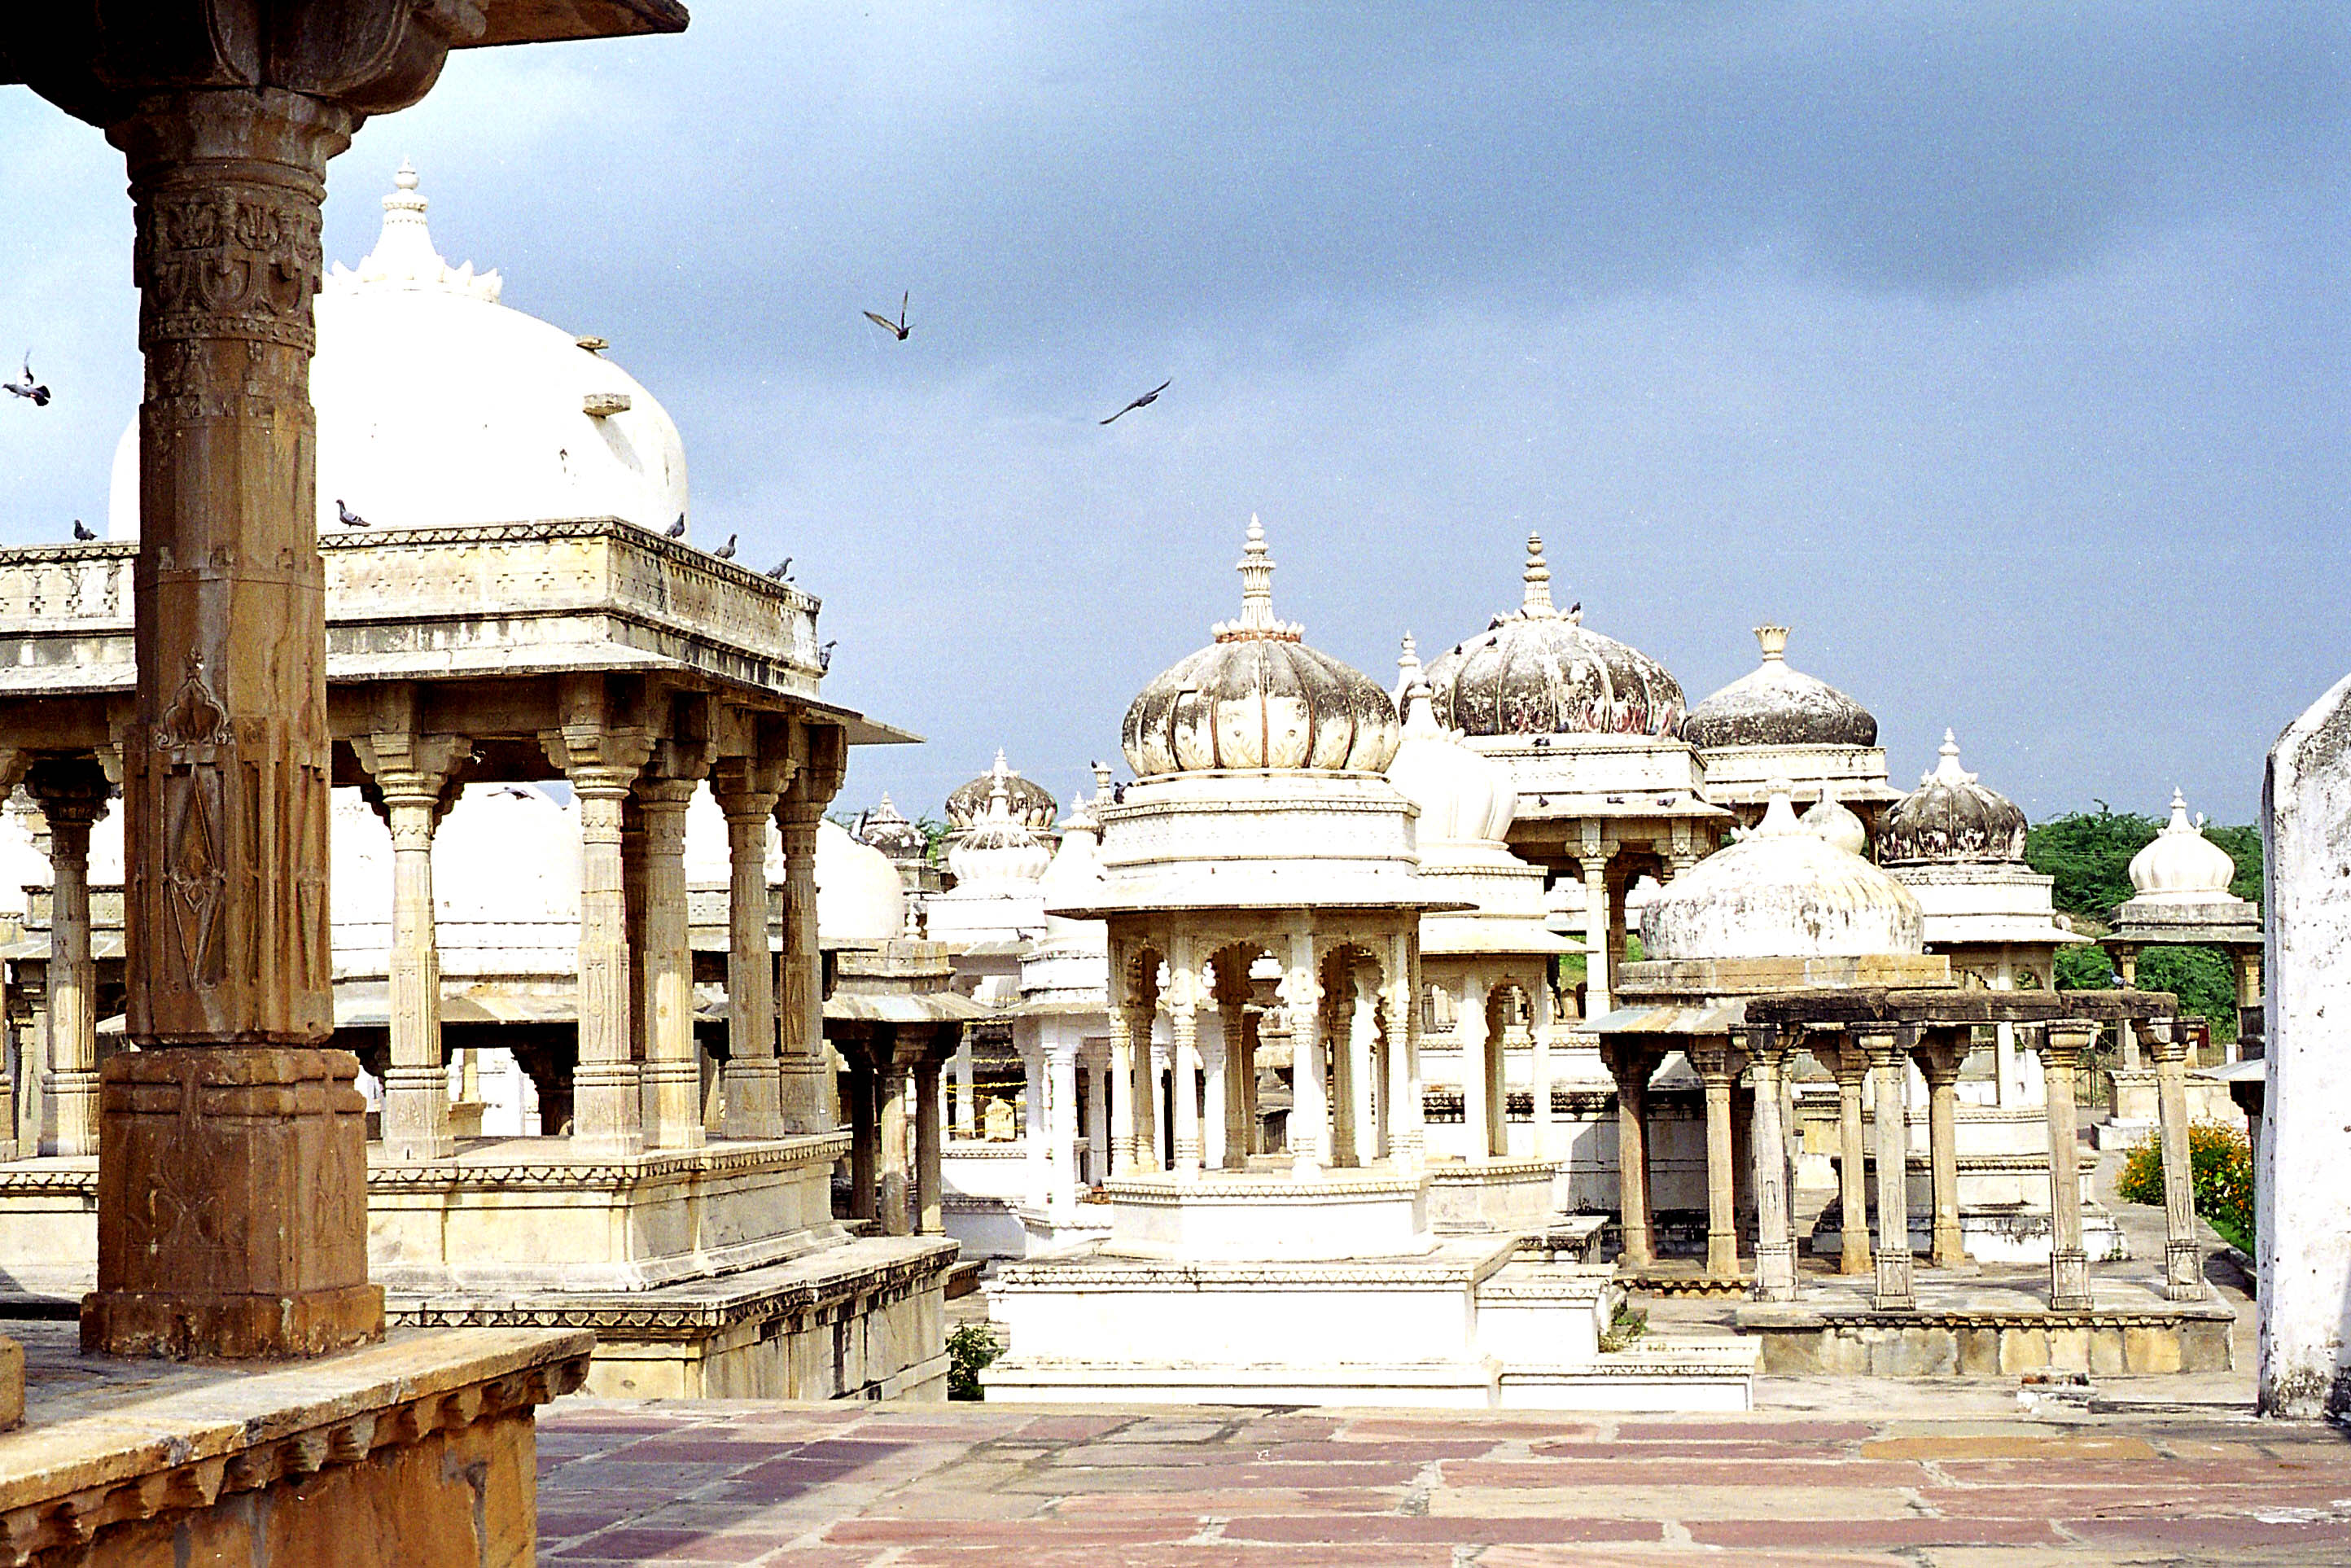 dating udaipur rajasthan It is located in northern rajasthan,  after breakfast drive to udaipur,  ajanta caves classified as world heritage are rock-cut cave monuments dating from.